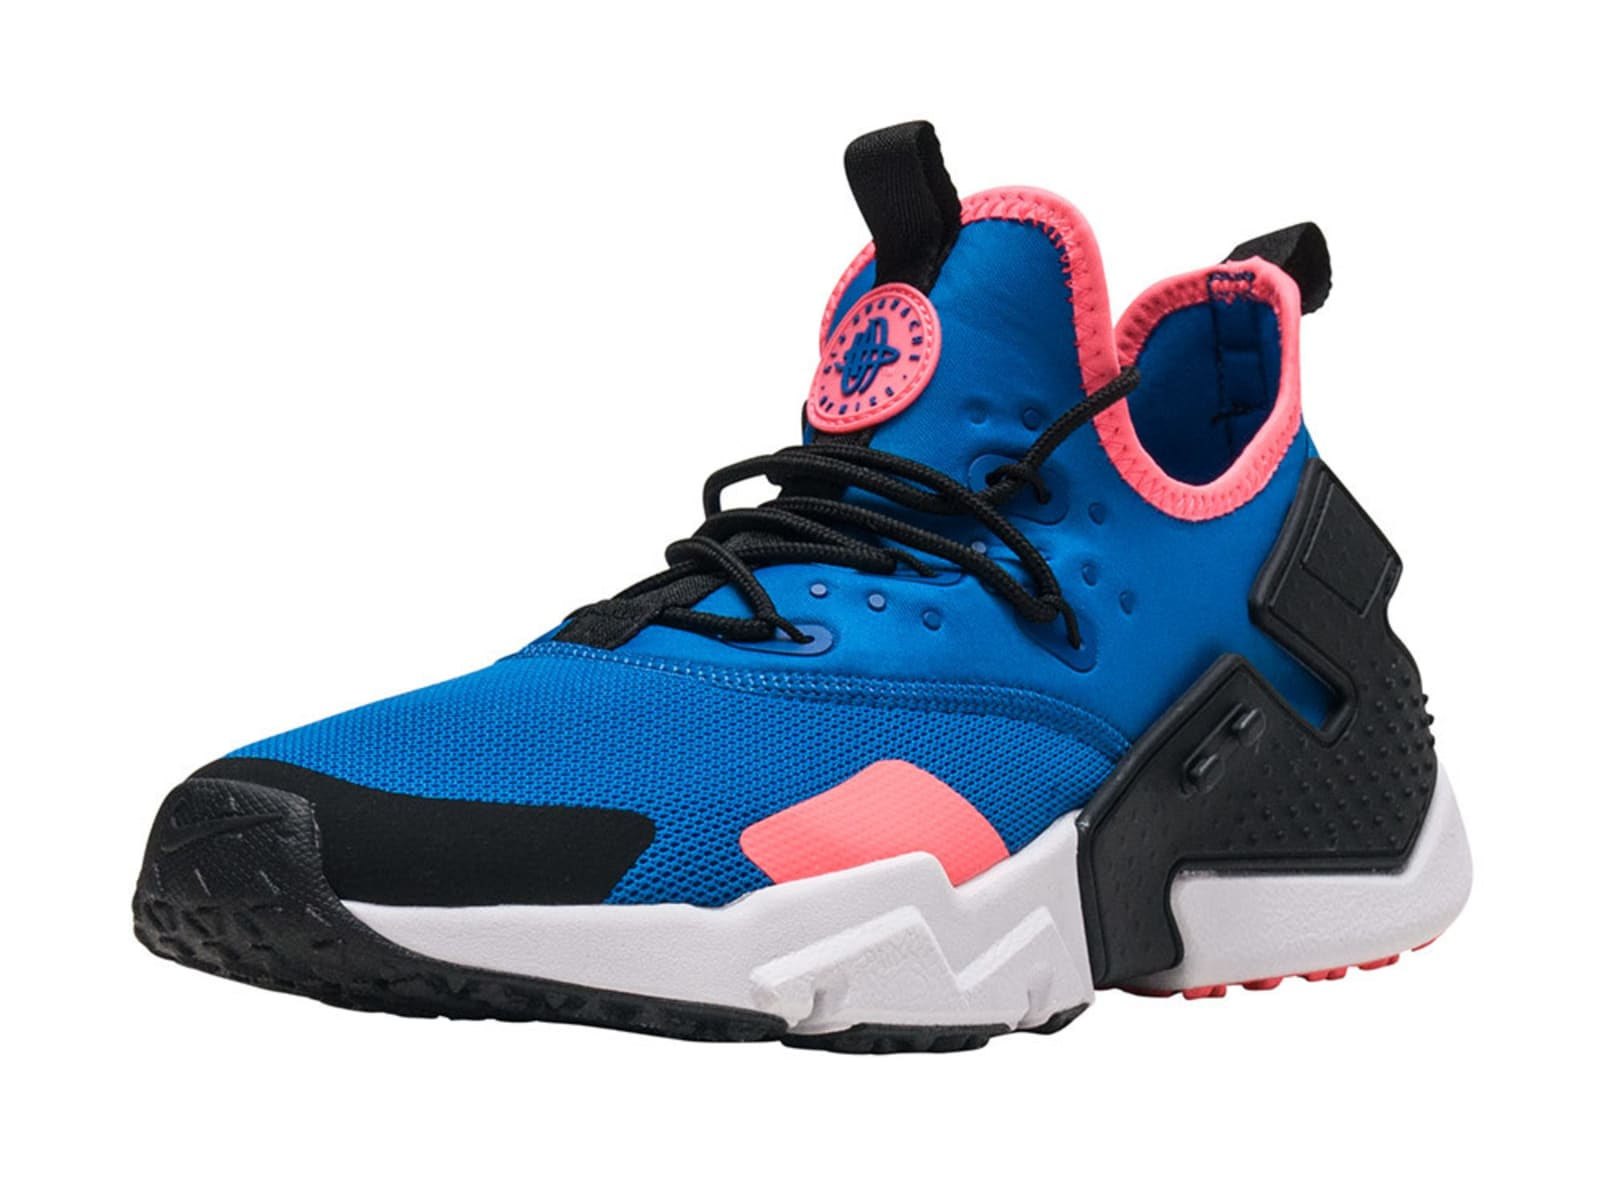 8025a2891 Nike Air Max 93 - Sneaker Sales August 17, 2018 | Sole Collector